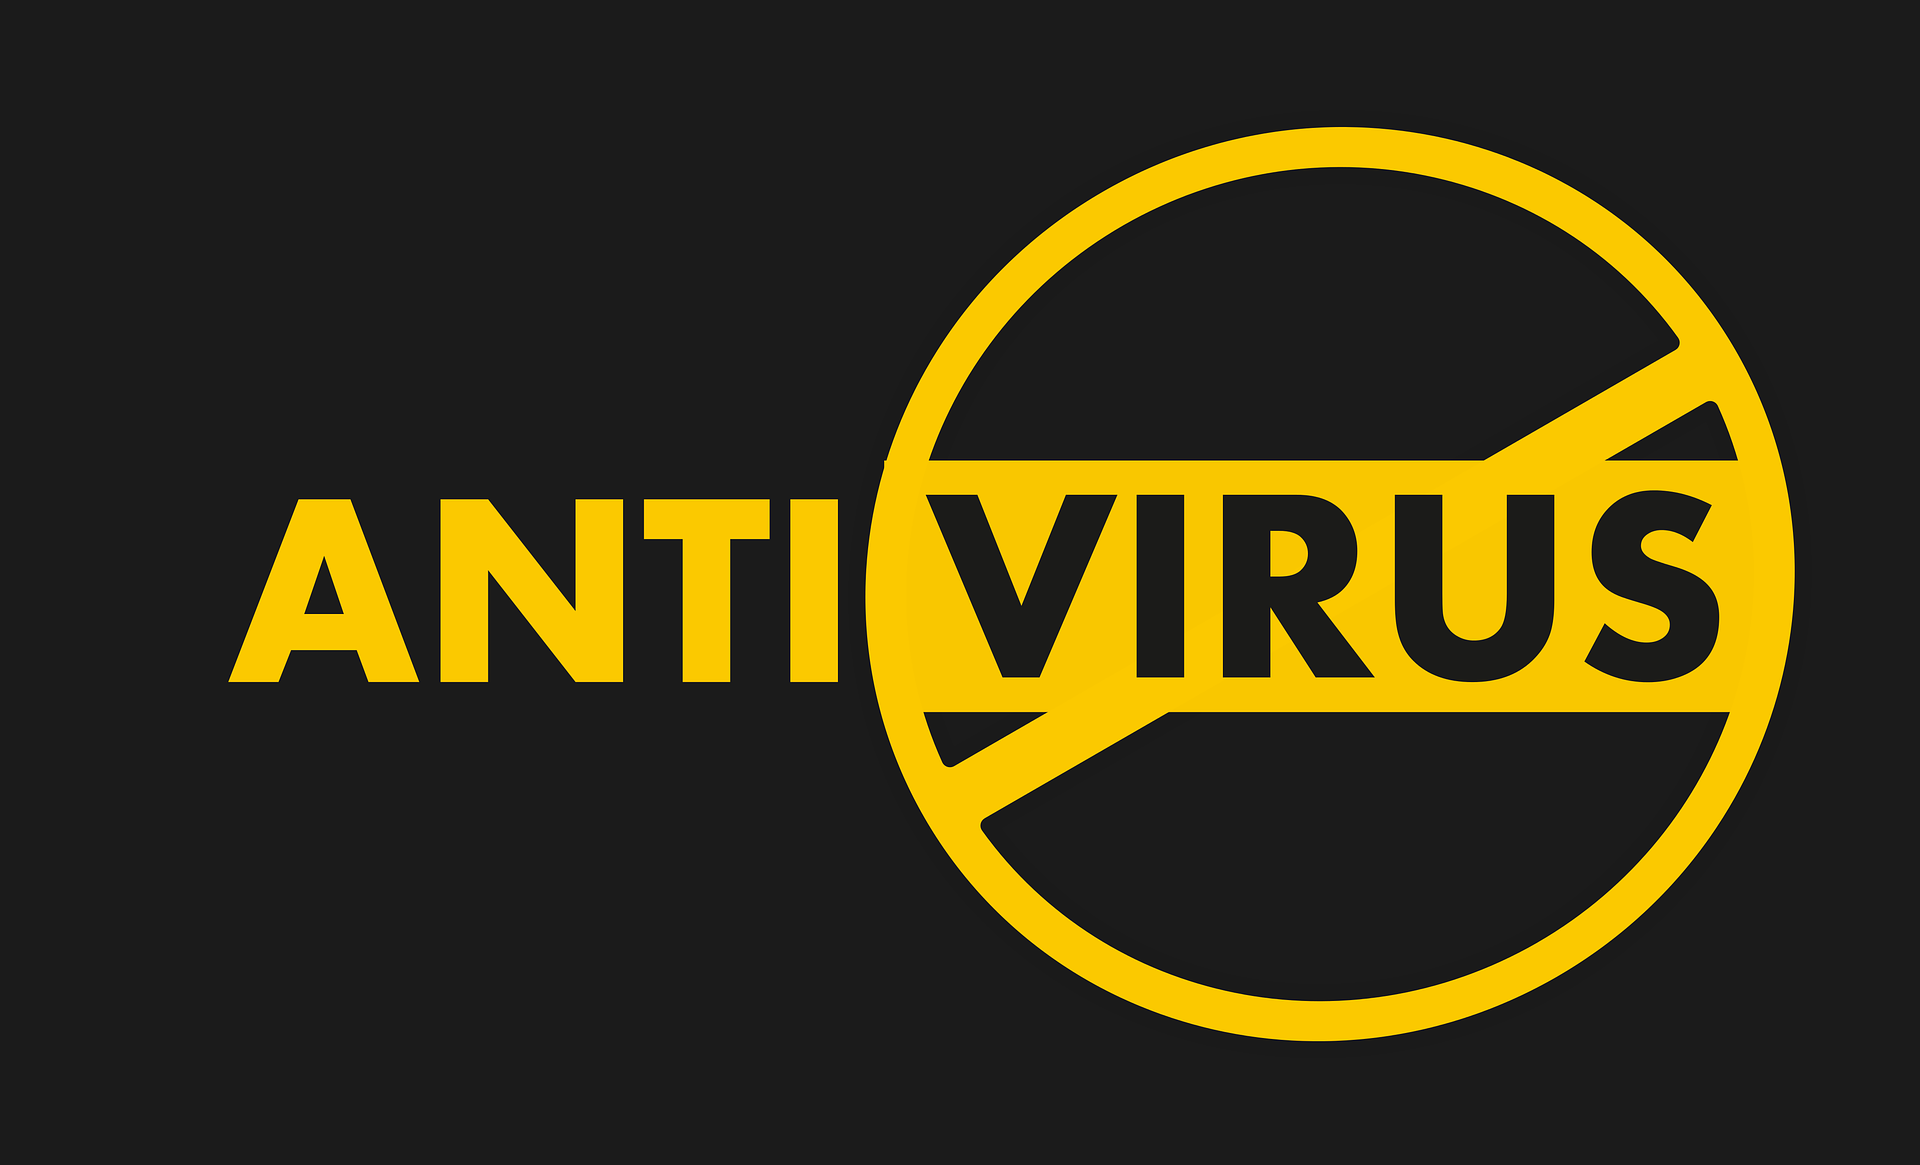 antivirus software Many free antivirus scanners from the likes of bitdefender, kaspersky, avast and other do a decent job when it comes to core protection, including protection from malware, trojan, virus, phishing.